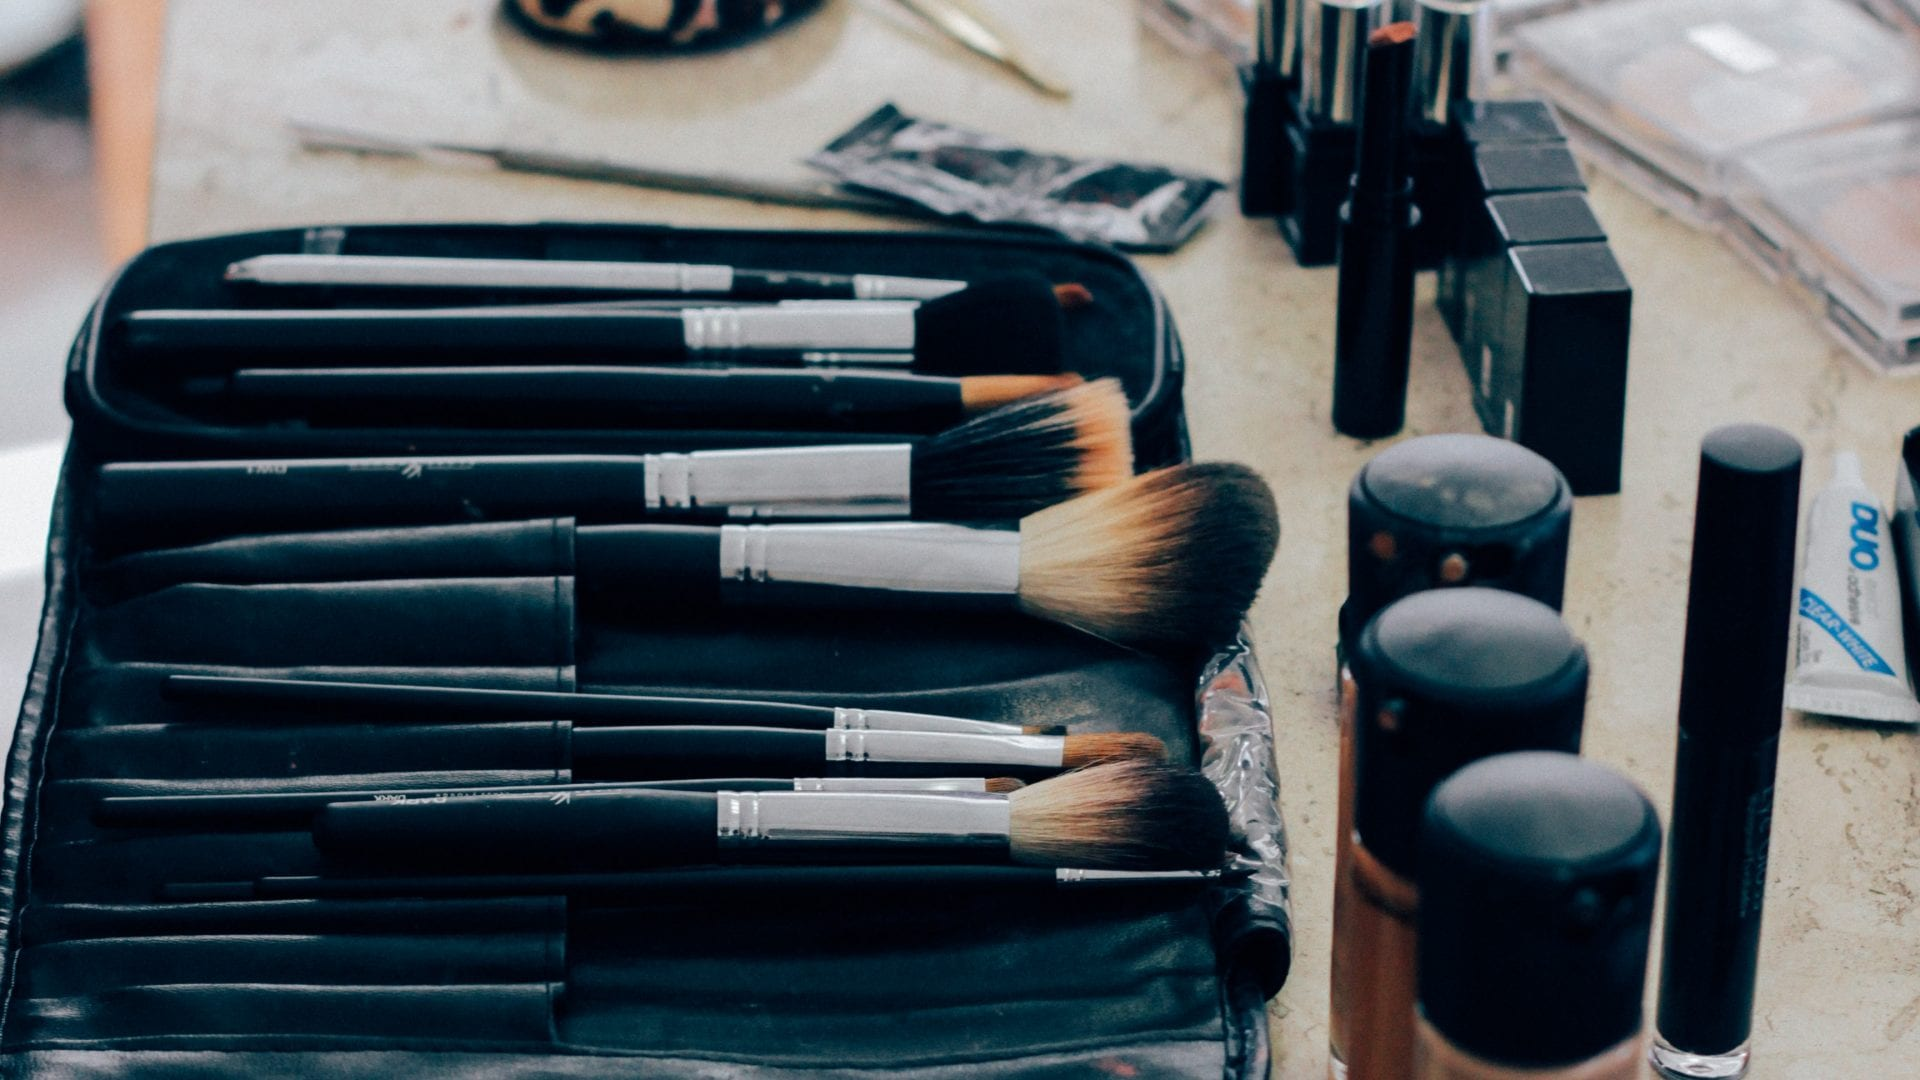 Wholesale Skin Care: Harmful Ingredients to Avoid in Beauty Products